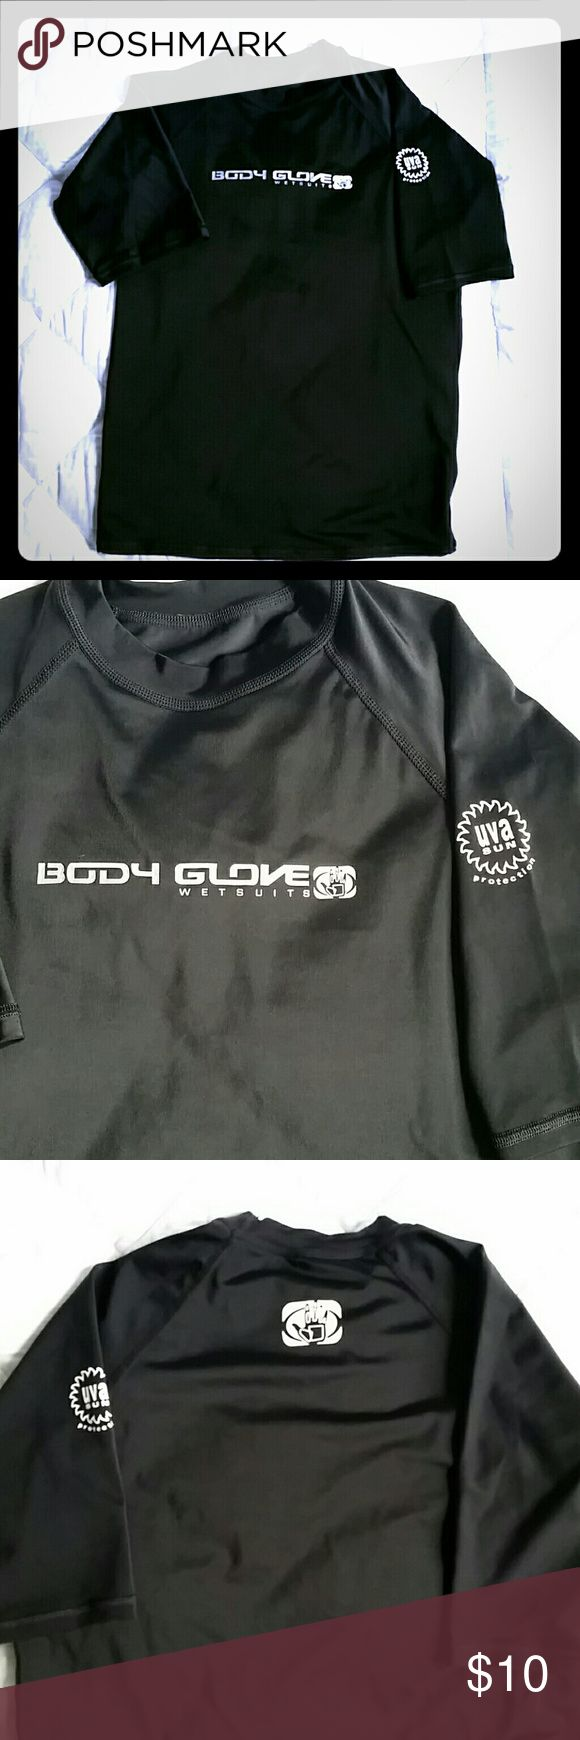 """Body Glove Wetsuits Shirt EUC - Hardly worn!   Made of nylon & spandex.   Measures approx 24"""" in length  & approx 17"""" from armpit to armpit.   It has UVA Sun Protection. Body Glove Shirts & Tops Tees - Short Sleeve"""